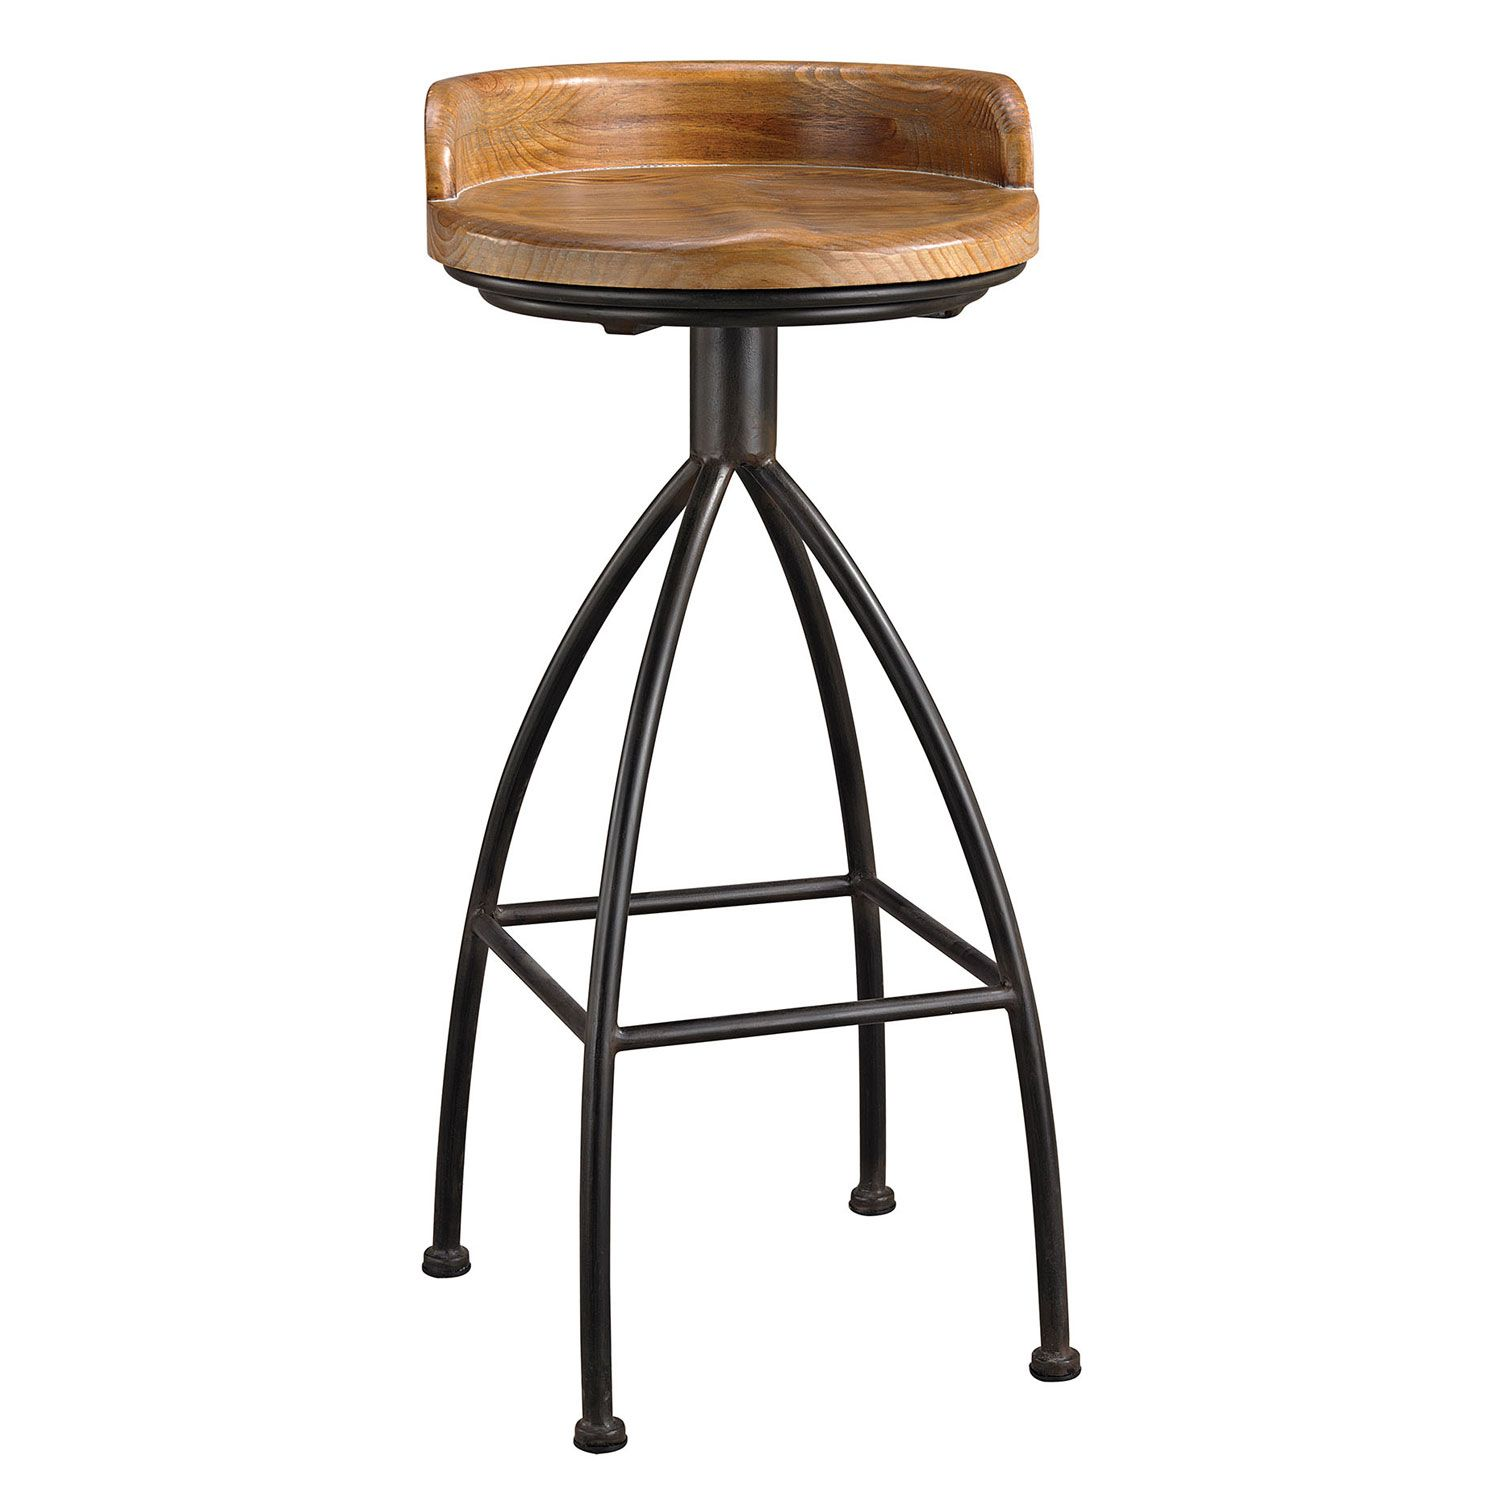 Natural And Industrial Styles Converge To Create The Soho Stool